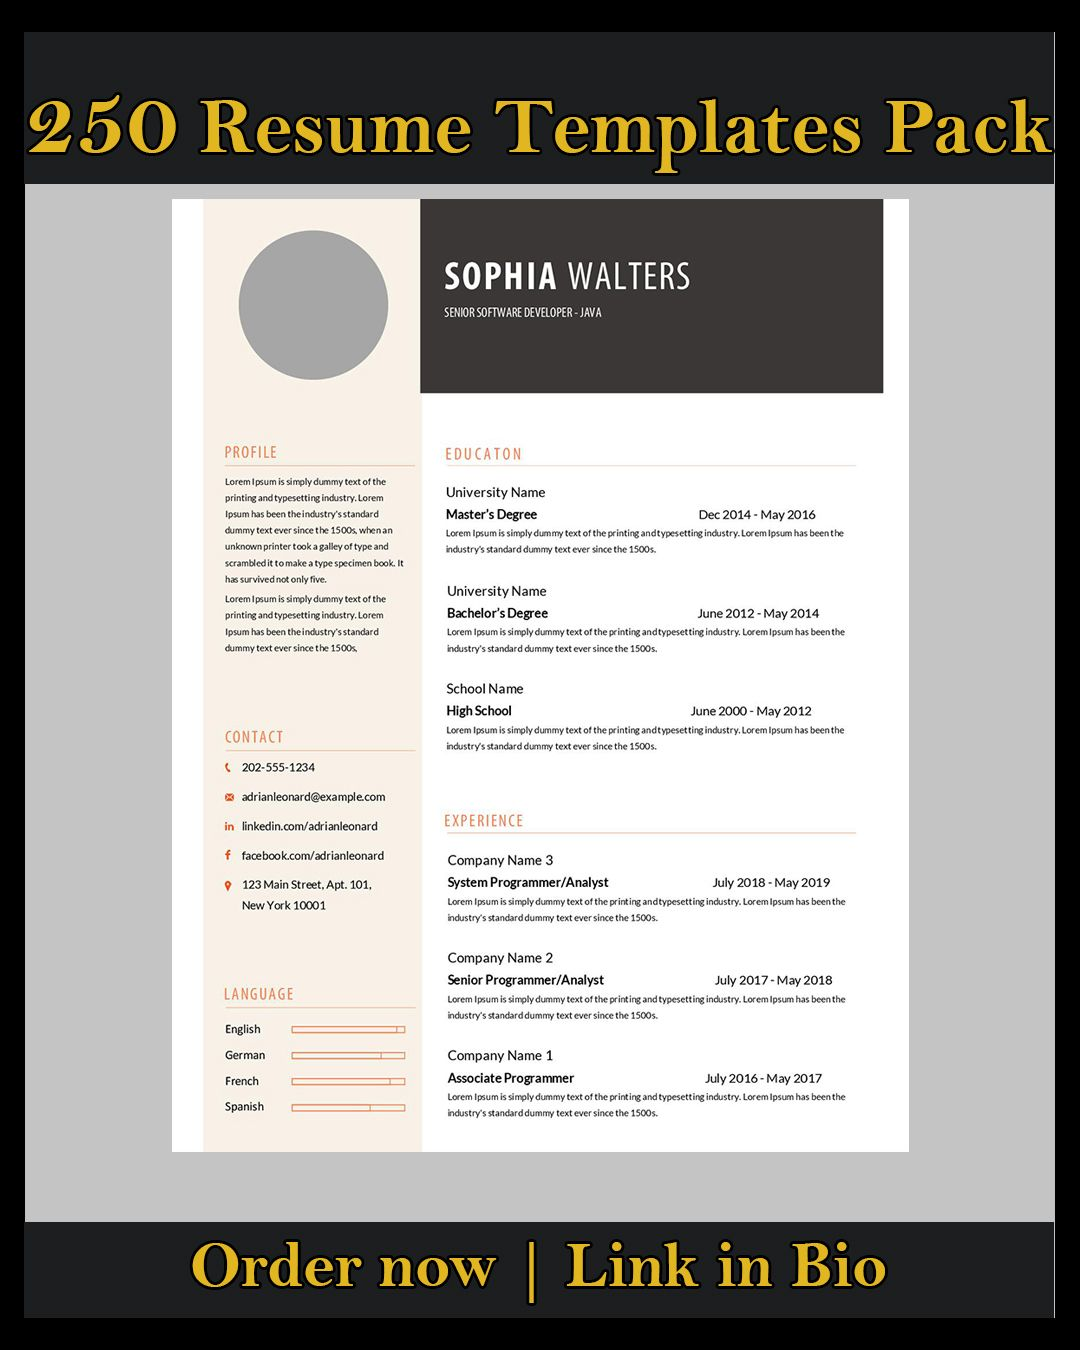 Provide 250 ms word resume template and cover letter